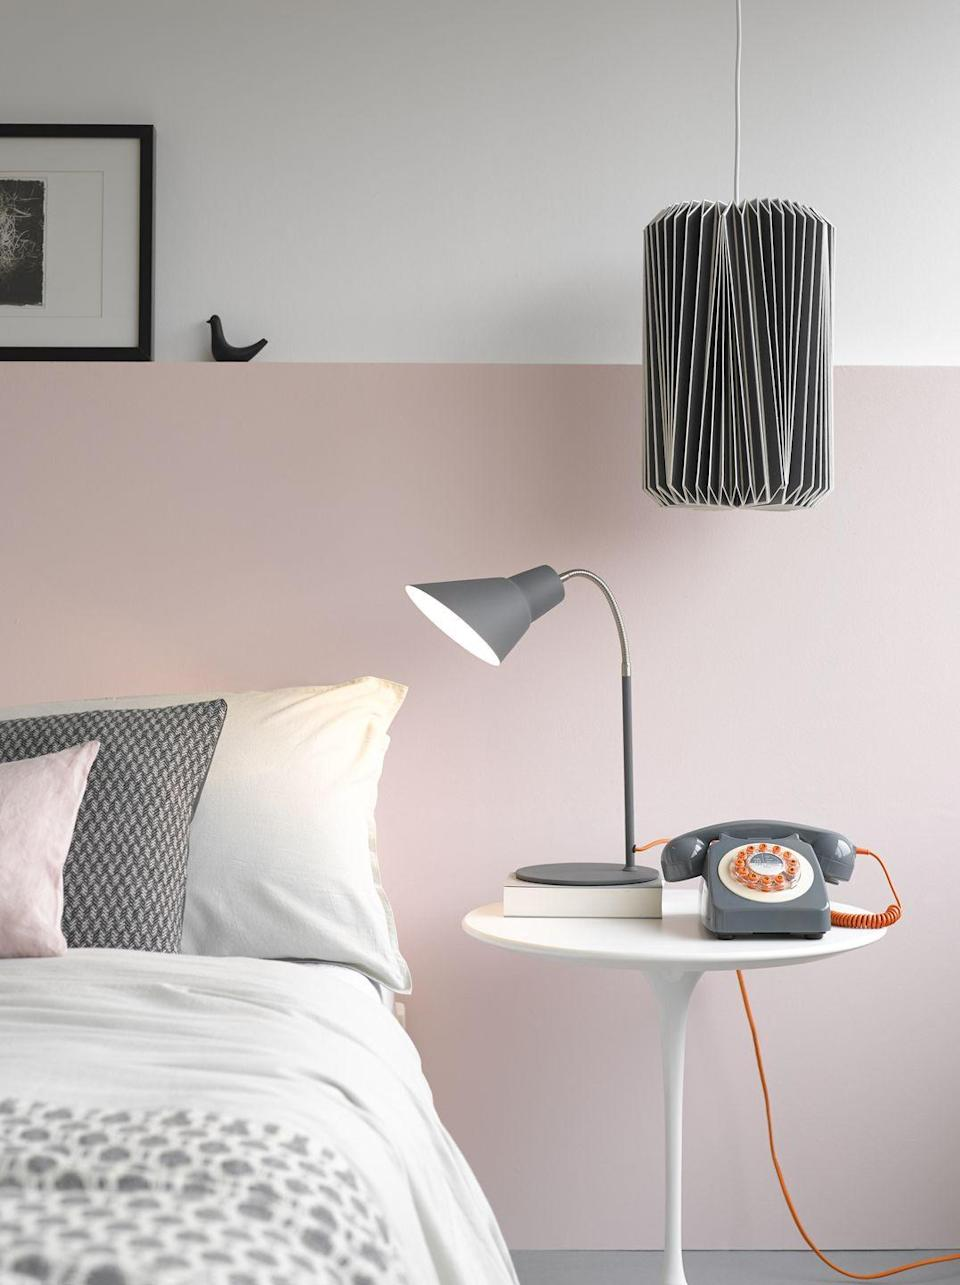 """<p>A pink and grey bedroom combination is perfect, especially when you choose to bring in grey through accessories. From a desk lamp to scatter cushions, there are lots of ways you can tap into this calming palette. </p><p>• Shop the look at <a href=""""https://go.redirectingat.com?id=127X1599956&url=https%3A%2F%2Fwww.cuckooland.com%2F&sref=https%3A%2F%2Fwww.housebeautiful.com%2Fuk%2Fdecorate%2Fbedroom%2Fg37103497%2Fpink-grey-bedroom%2F"""" rel=""""nofollow noopener"""" target=""""_blank"""" data-ylk=""""slk:Cuckooland"""" class=""""link rapid-noclick-resp"""">Cuckooland</a></p>"""